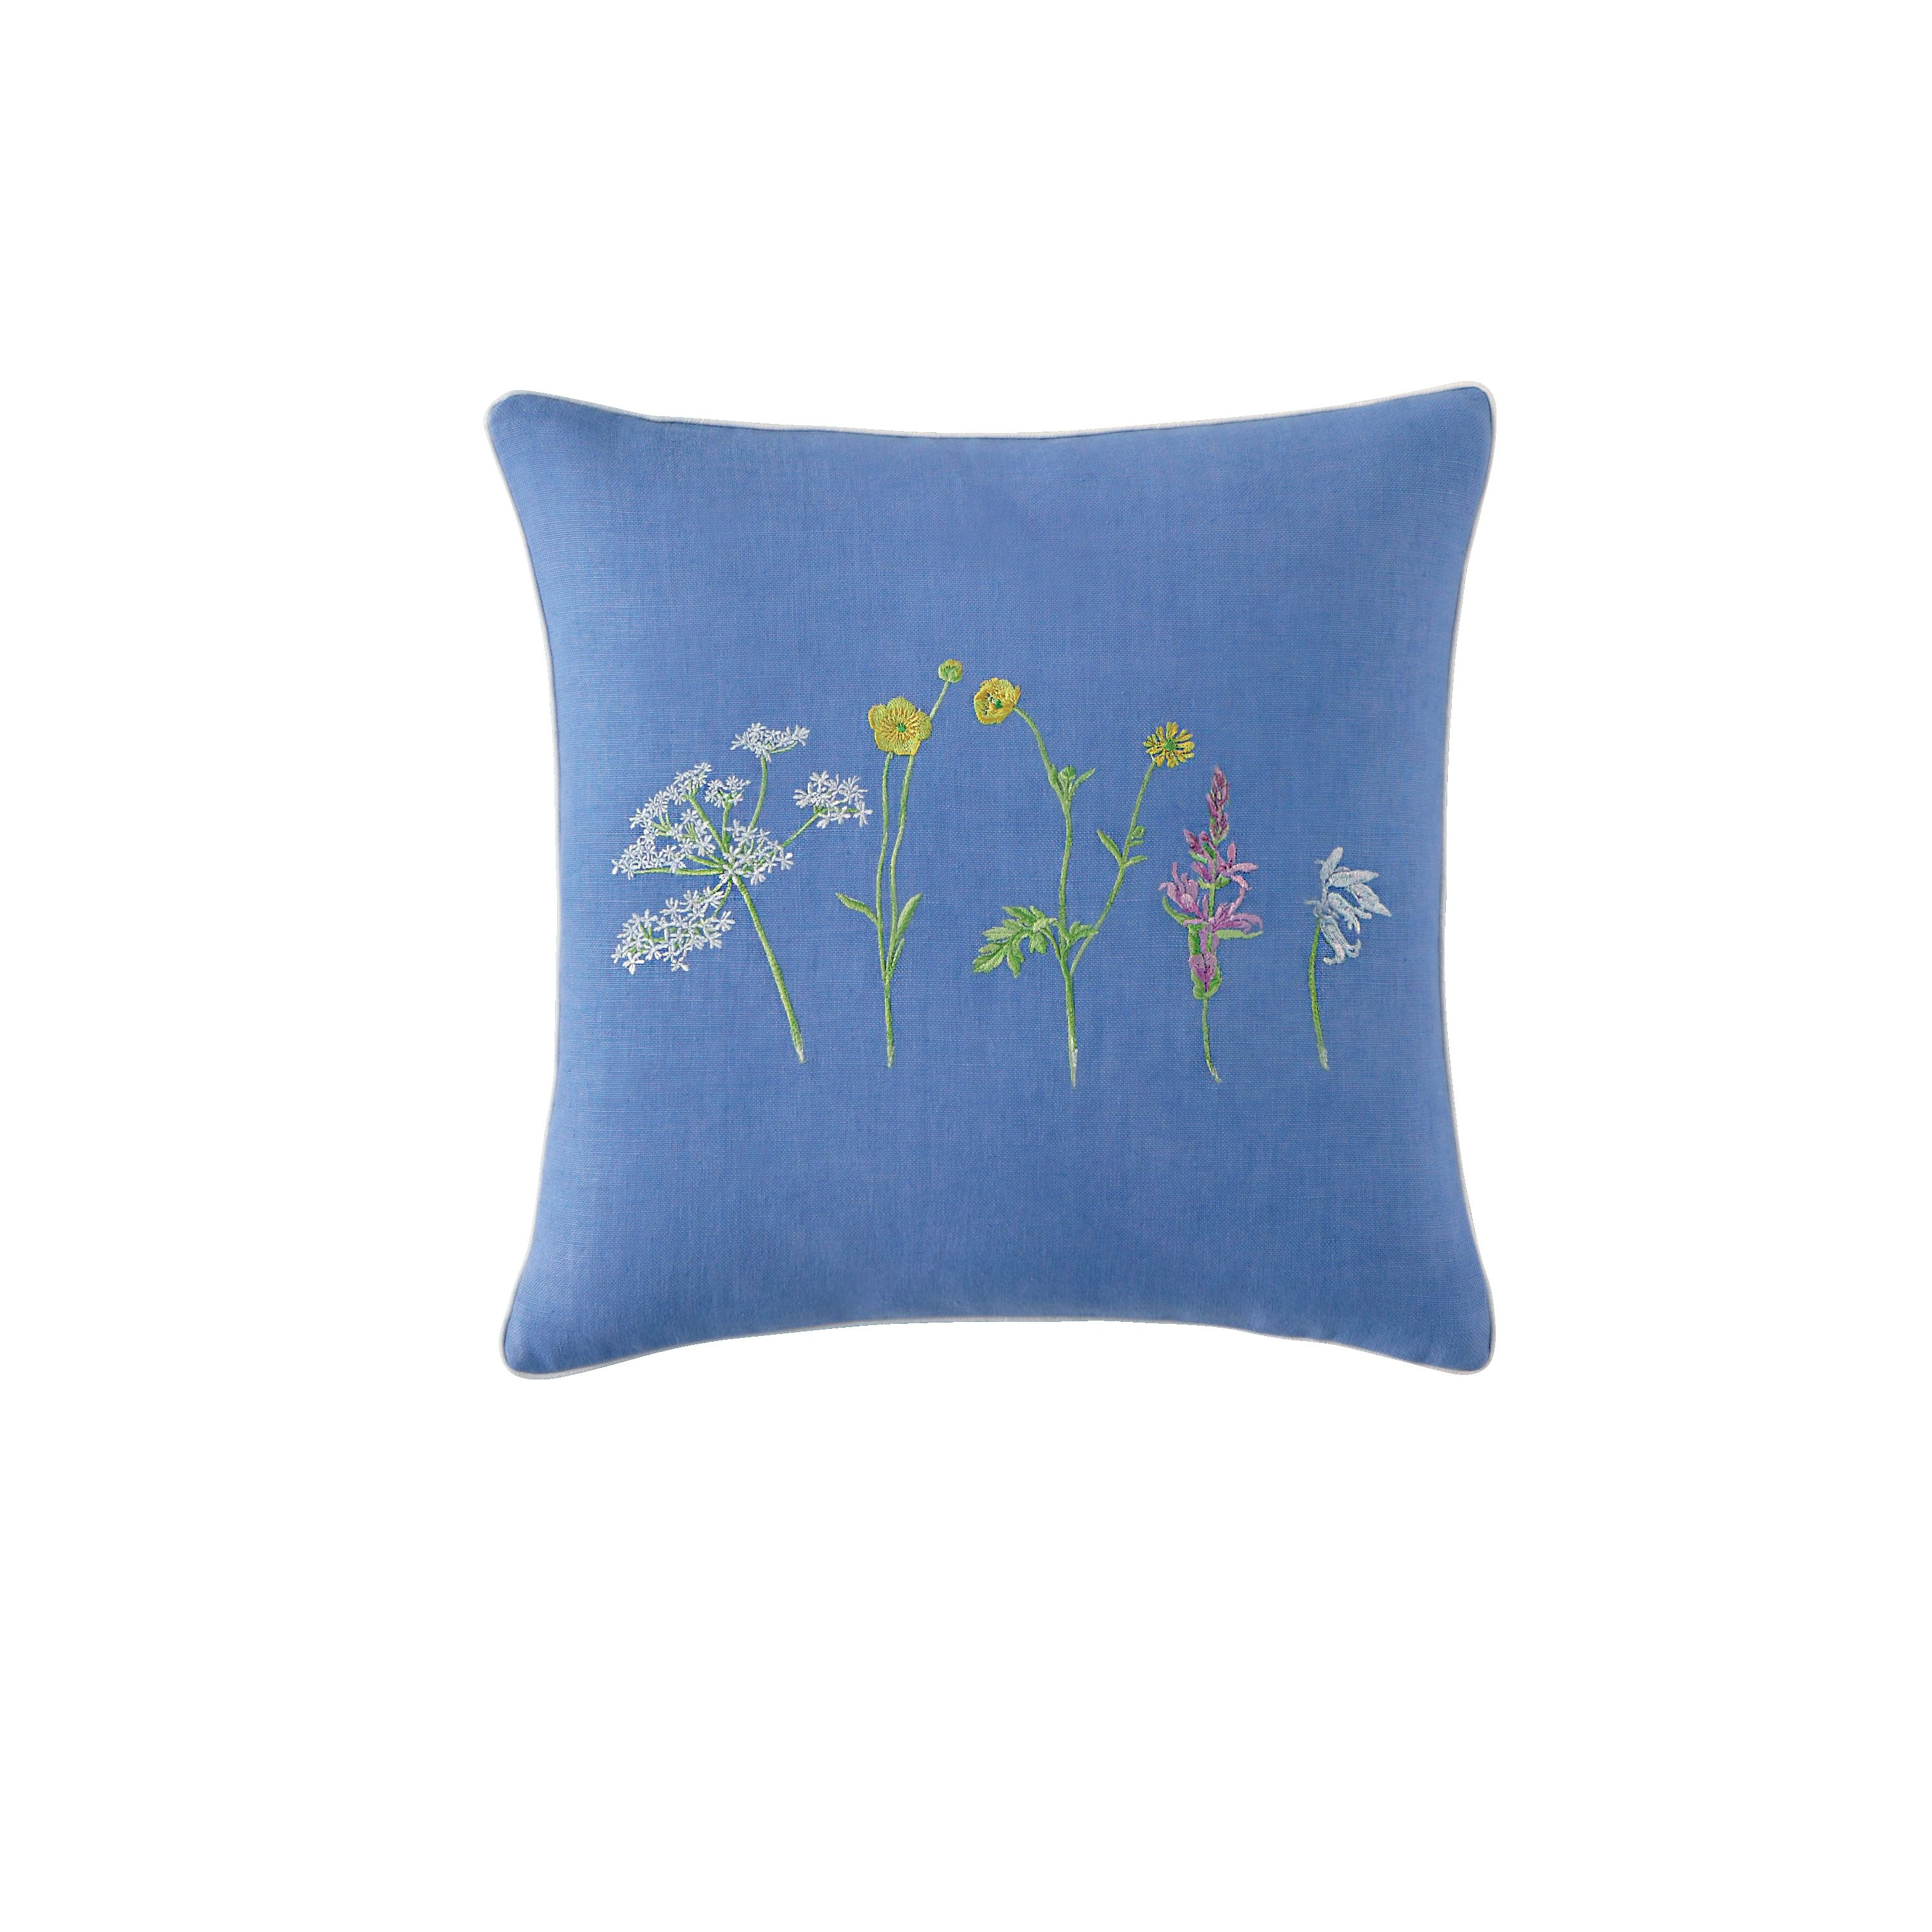 Beaucoup bleu cushion cover sqaure